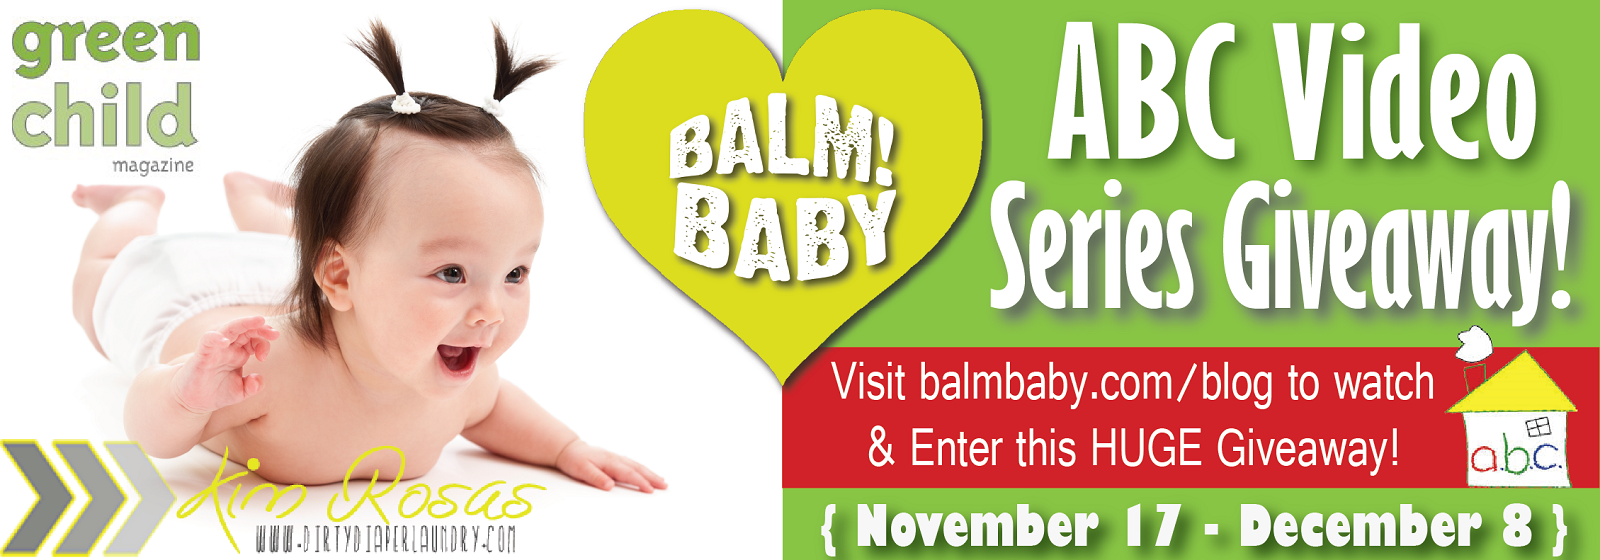 BALM Baby ABC Video Giveaway!  Watch and Win!